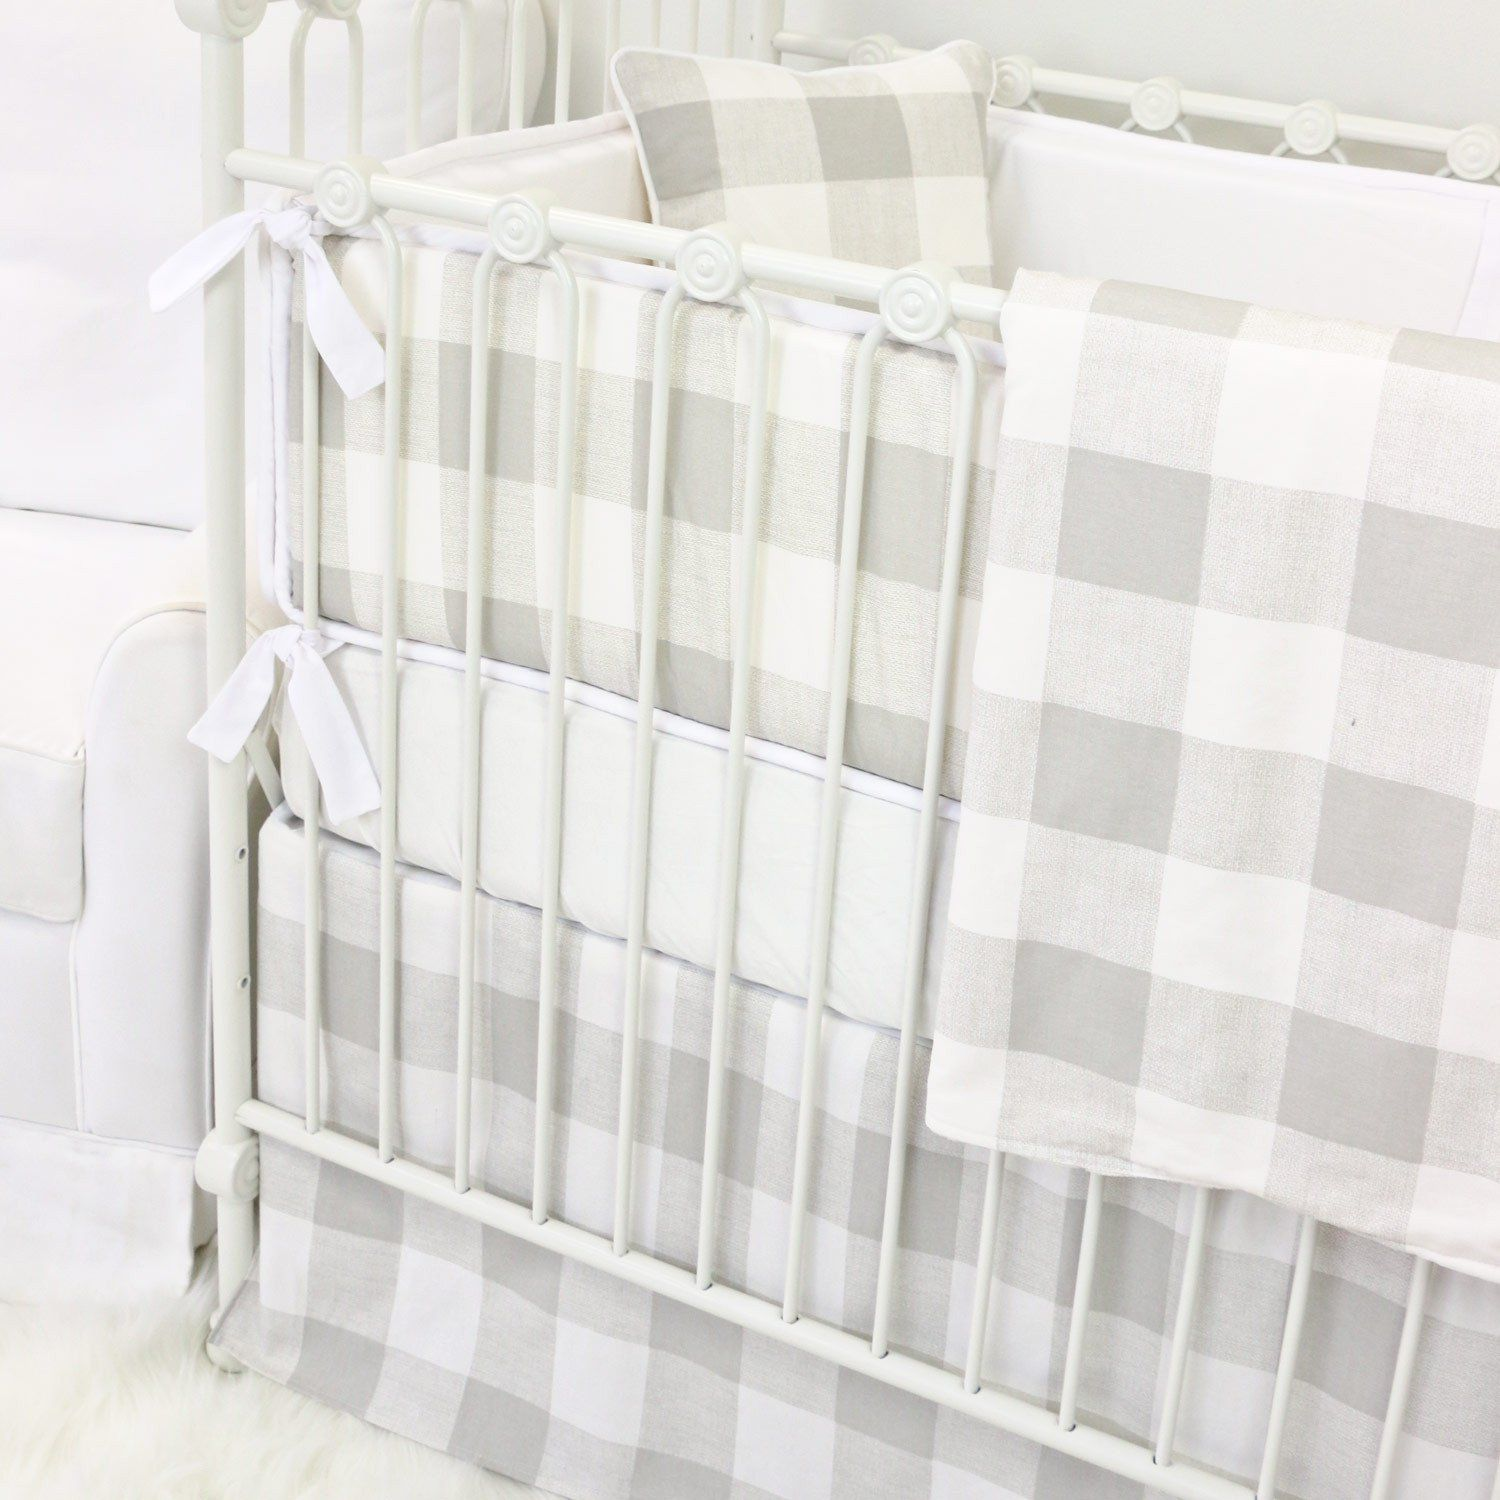 herringbone the houndstooth in pin fabrics bedding plaid and navy gray with world nursery print cribs a crib boyish pinterest like map